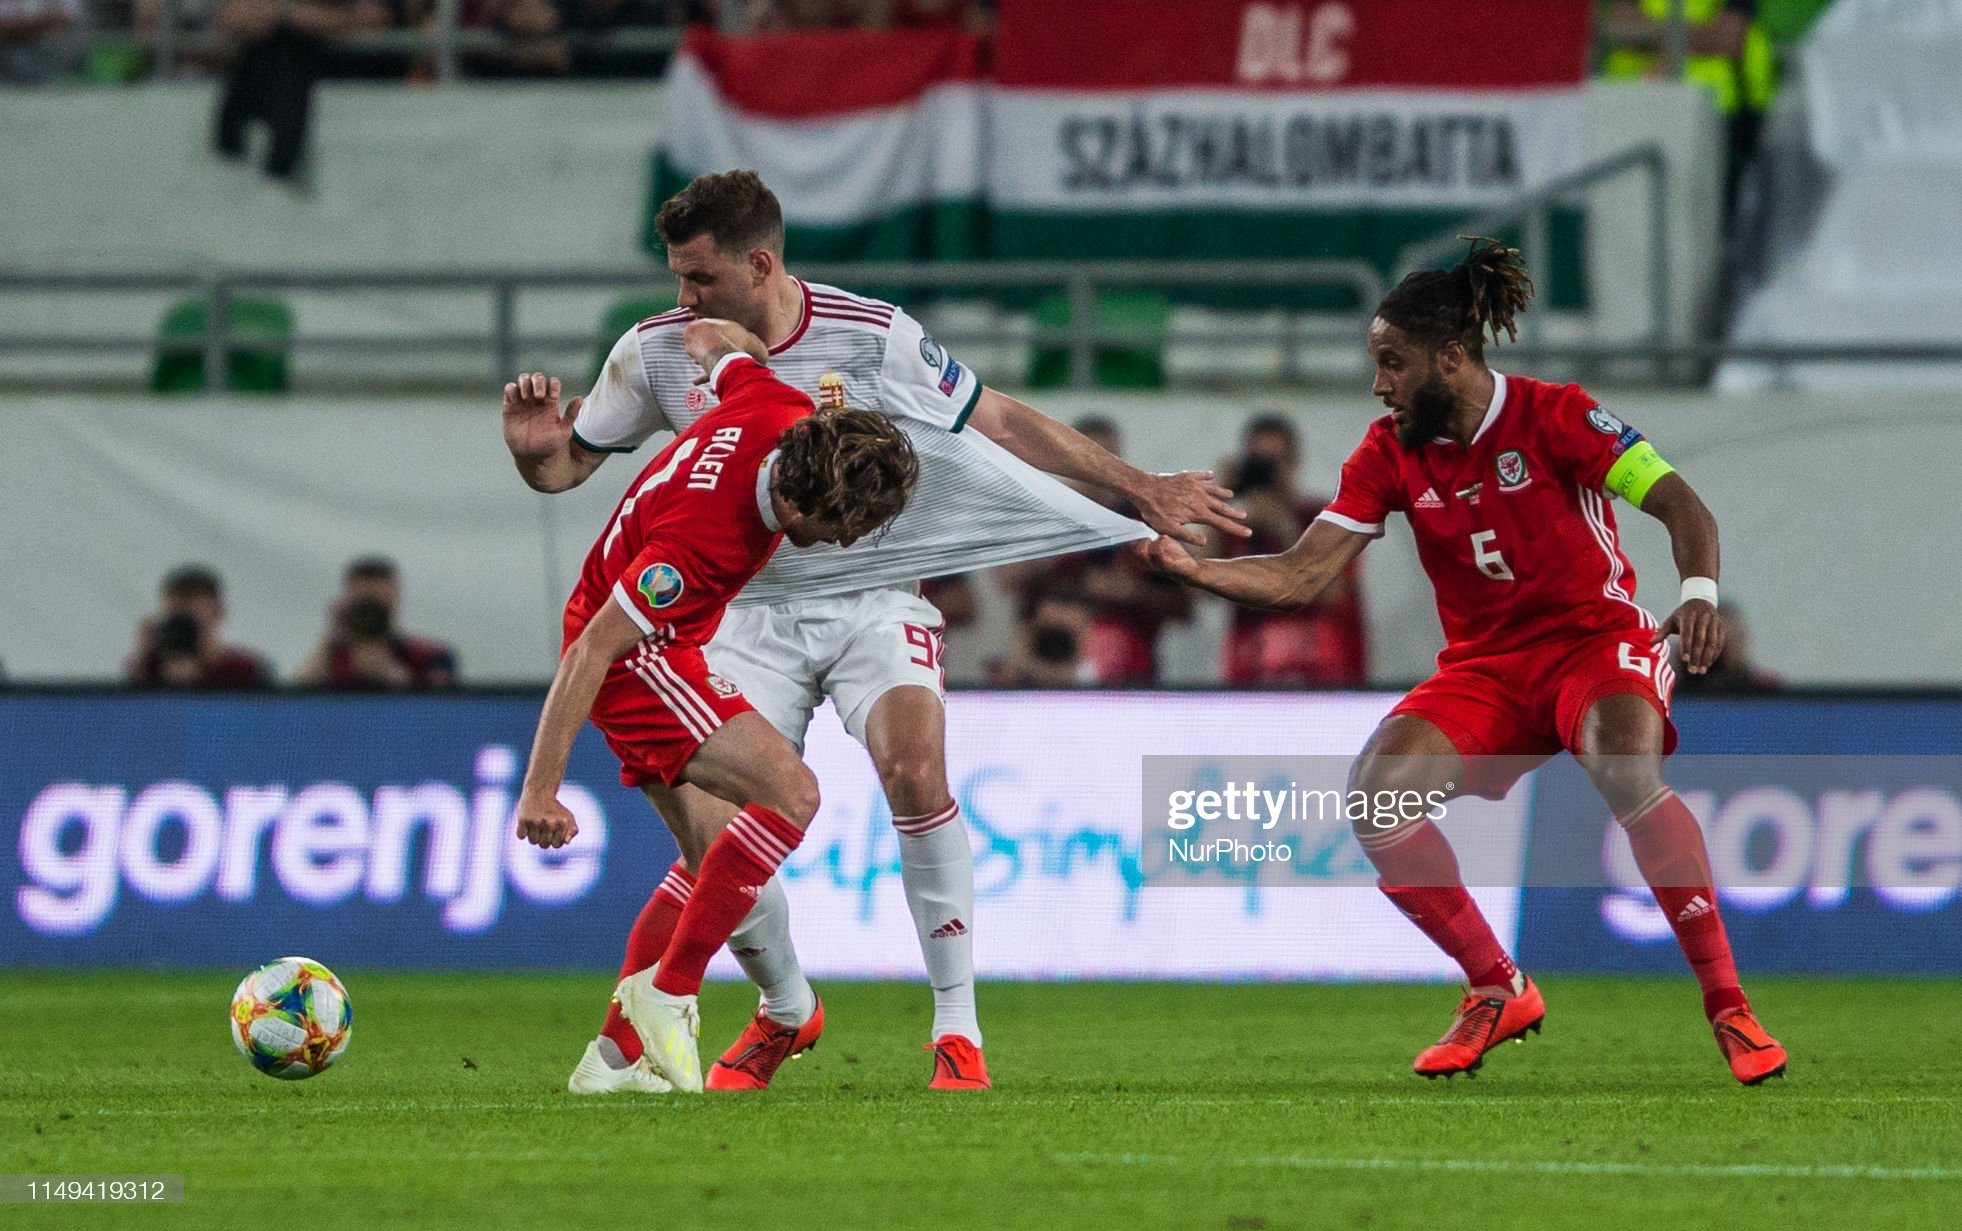 Wales v Hungary preview, prediction and odds